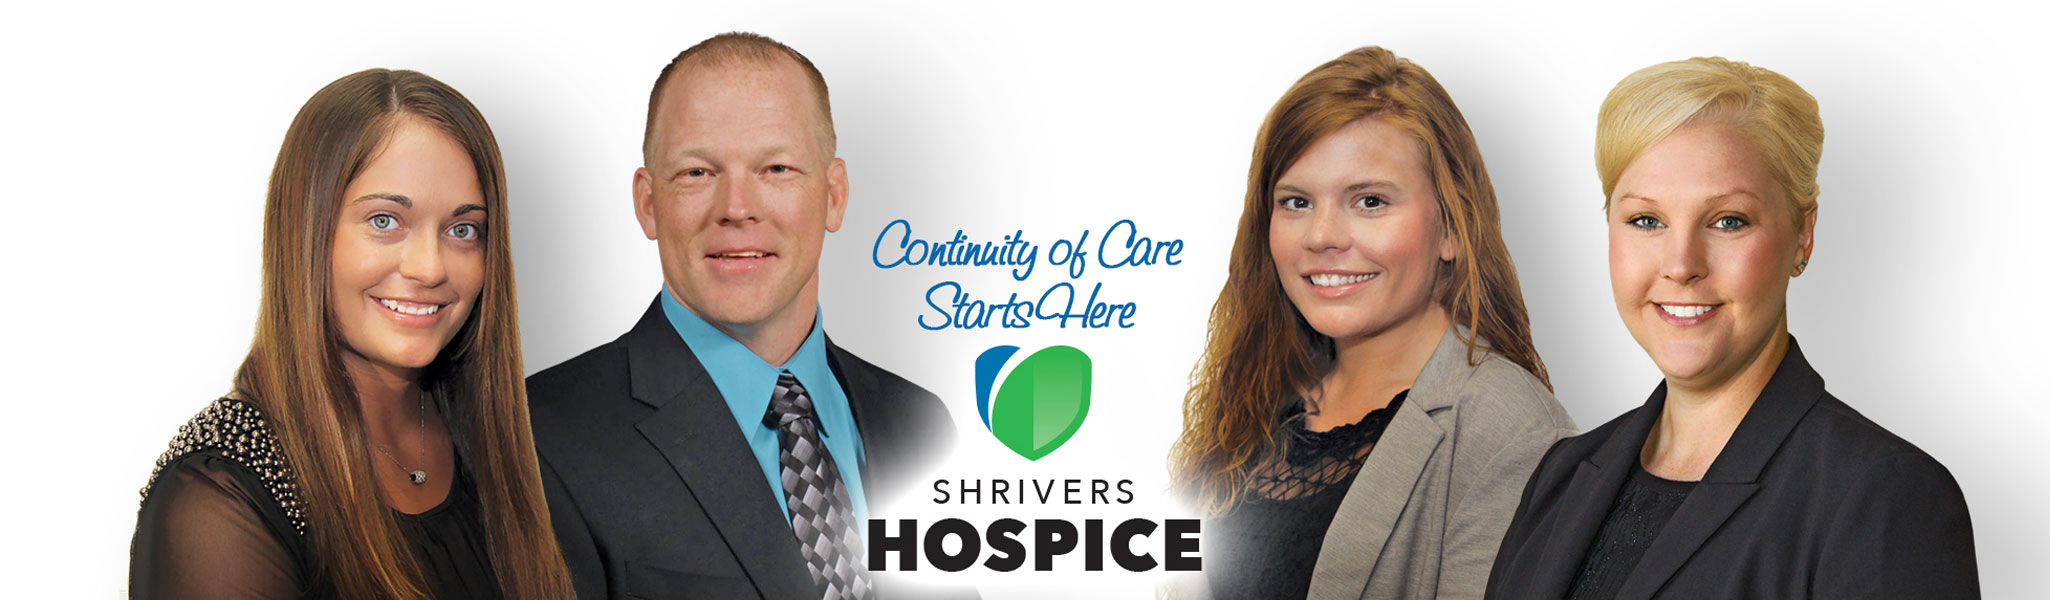 Shrivers-Pharmacy-Home-Hospice-Wb